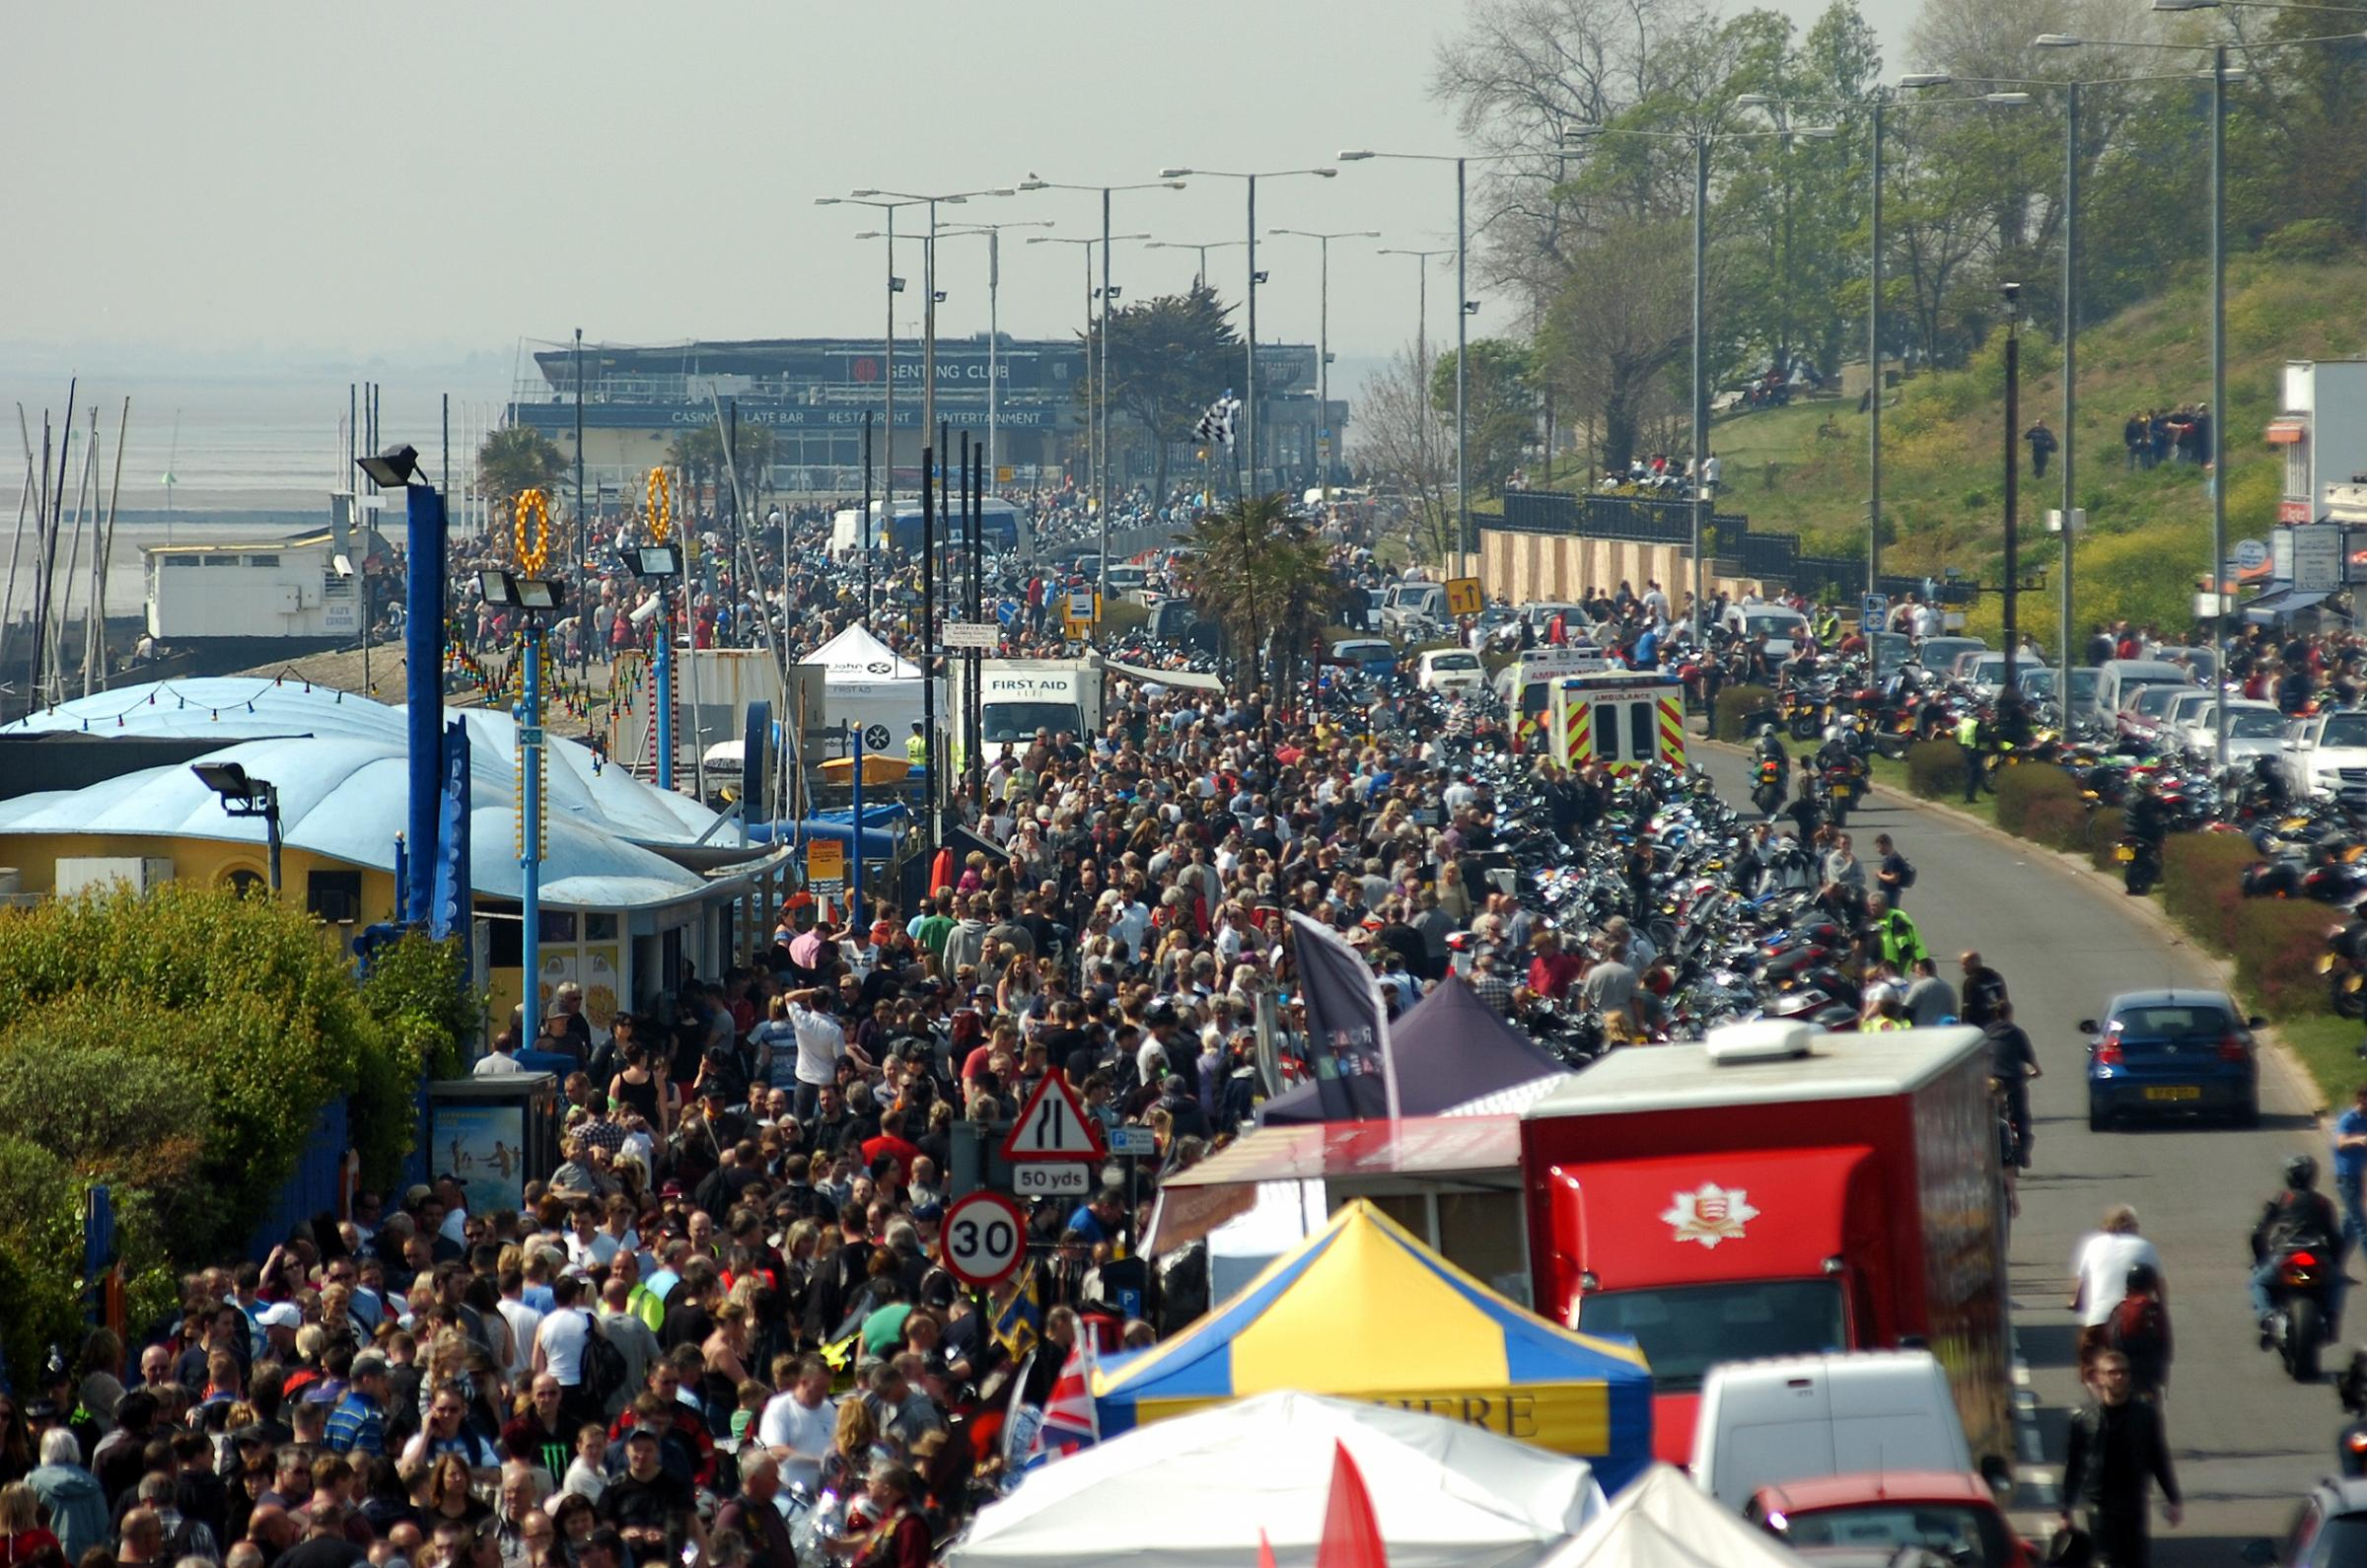 Crowds flock to the seafront